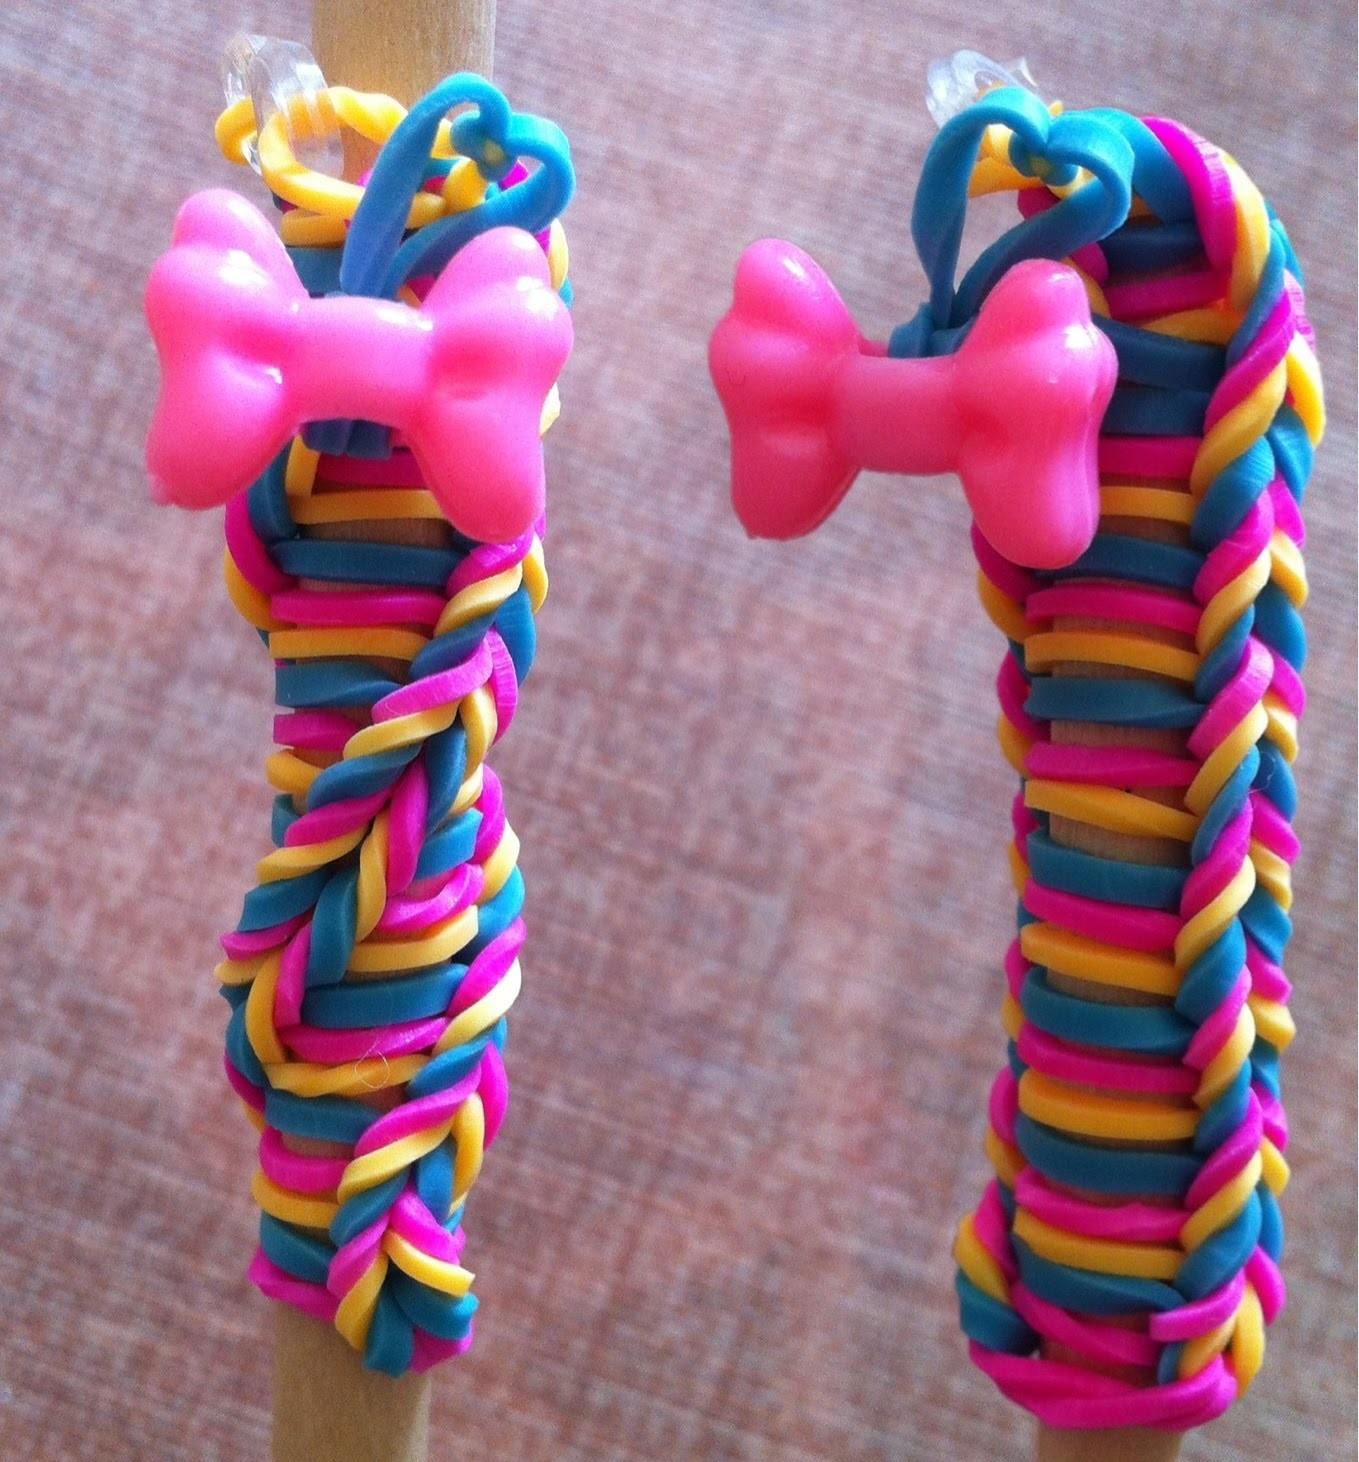 TUTORIAL MATITA RAINBOW LOOM CON DUE DITA TWIST FISHTAIL- DIY LOOM PENCIL USING TWO FINGERS